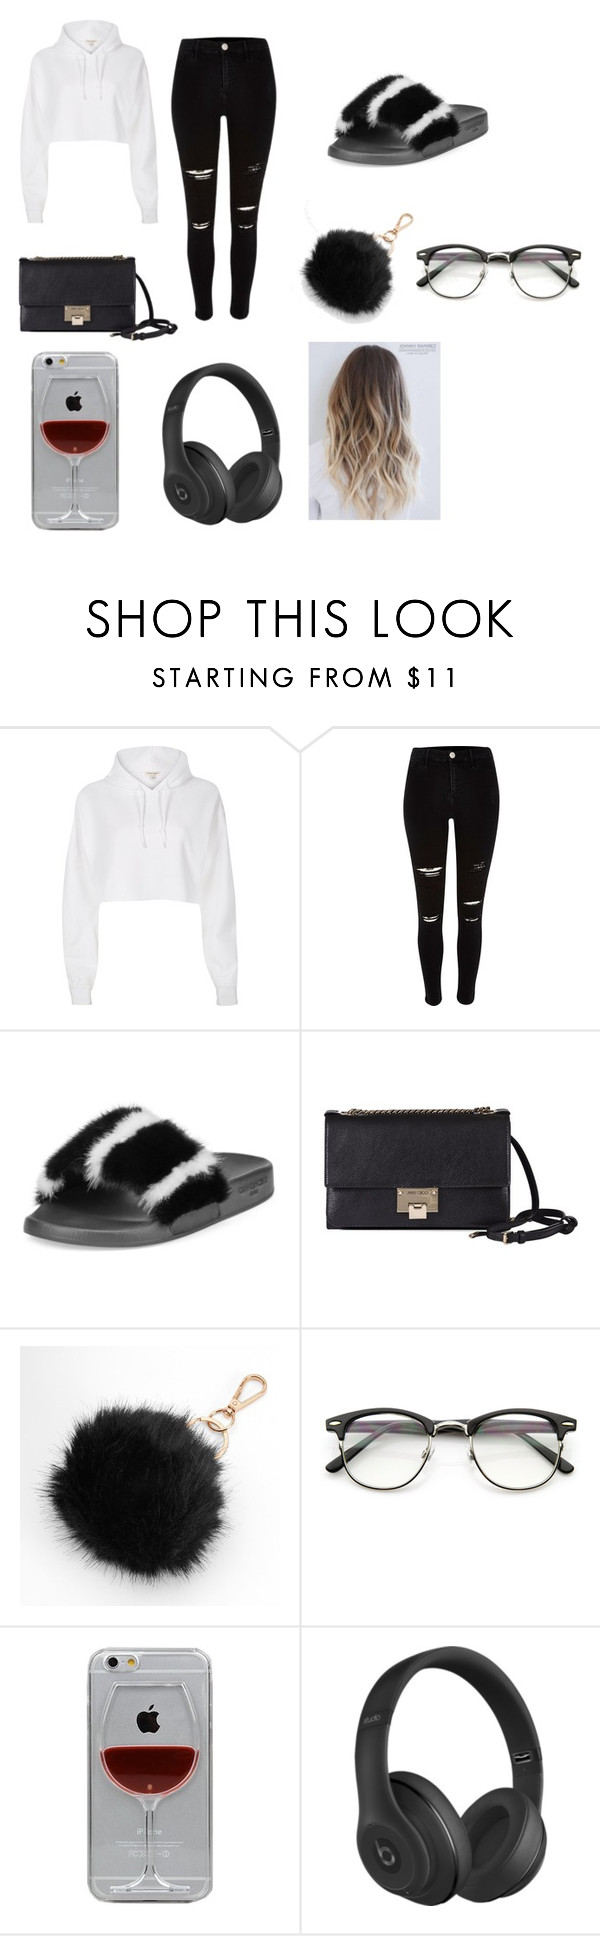 """""""when u doing ur thing"""" by mynameisyaya ❤ liked on Polyvore featuring River Island, Givenchy, Jimmy Choo, Mudd, Reyes and Beats by Dr. Dre"""